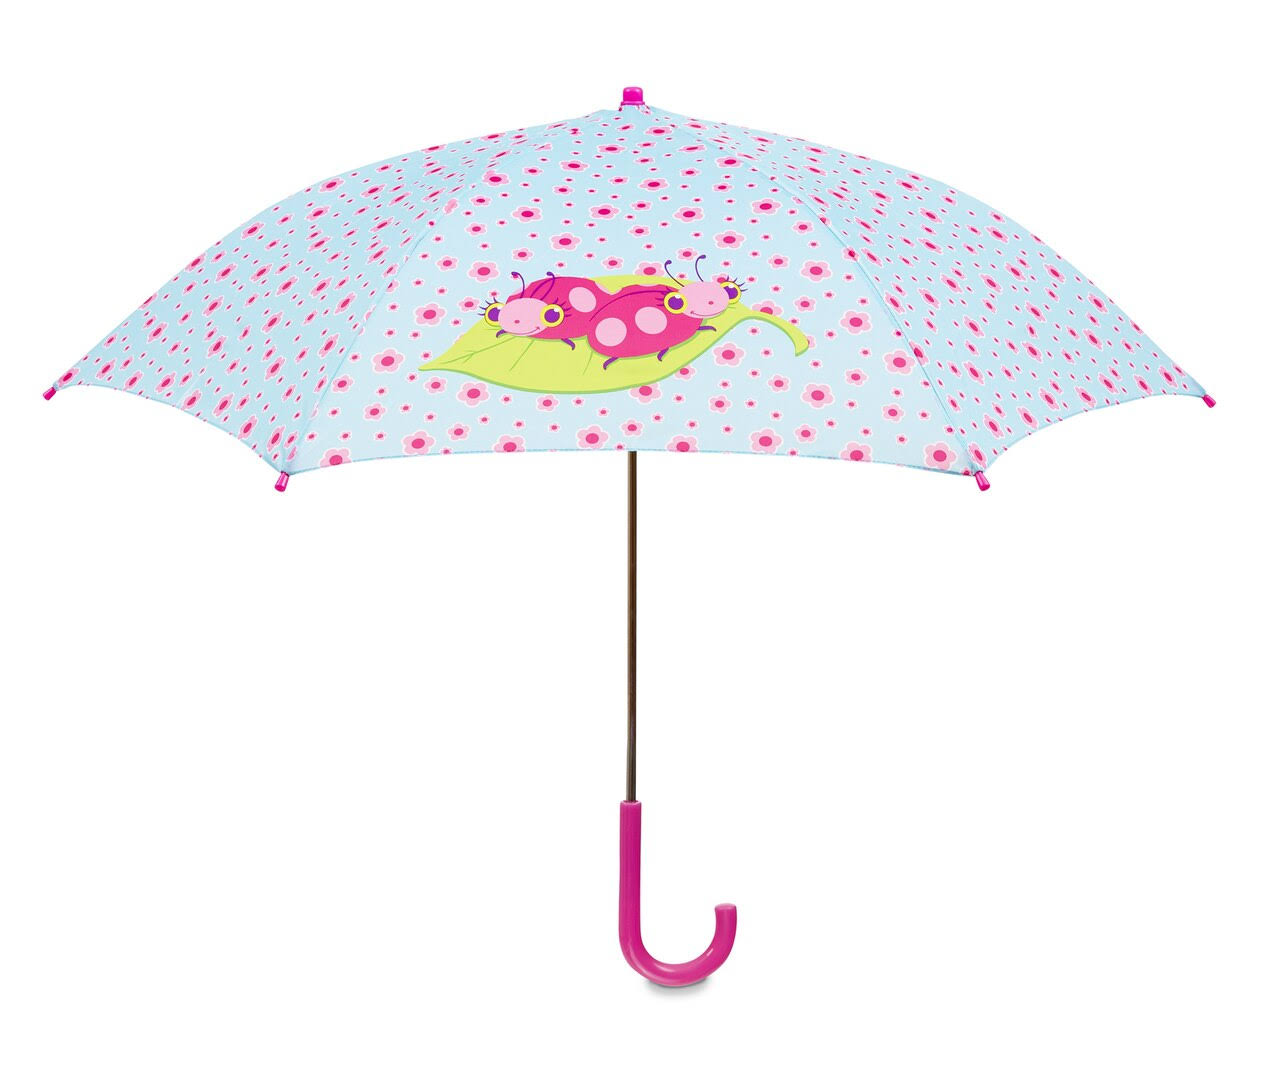 Melissa and Doug Trixie Ladybug Umbrella for Kids - with Safety Open and Close